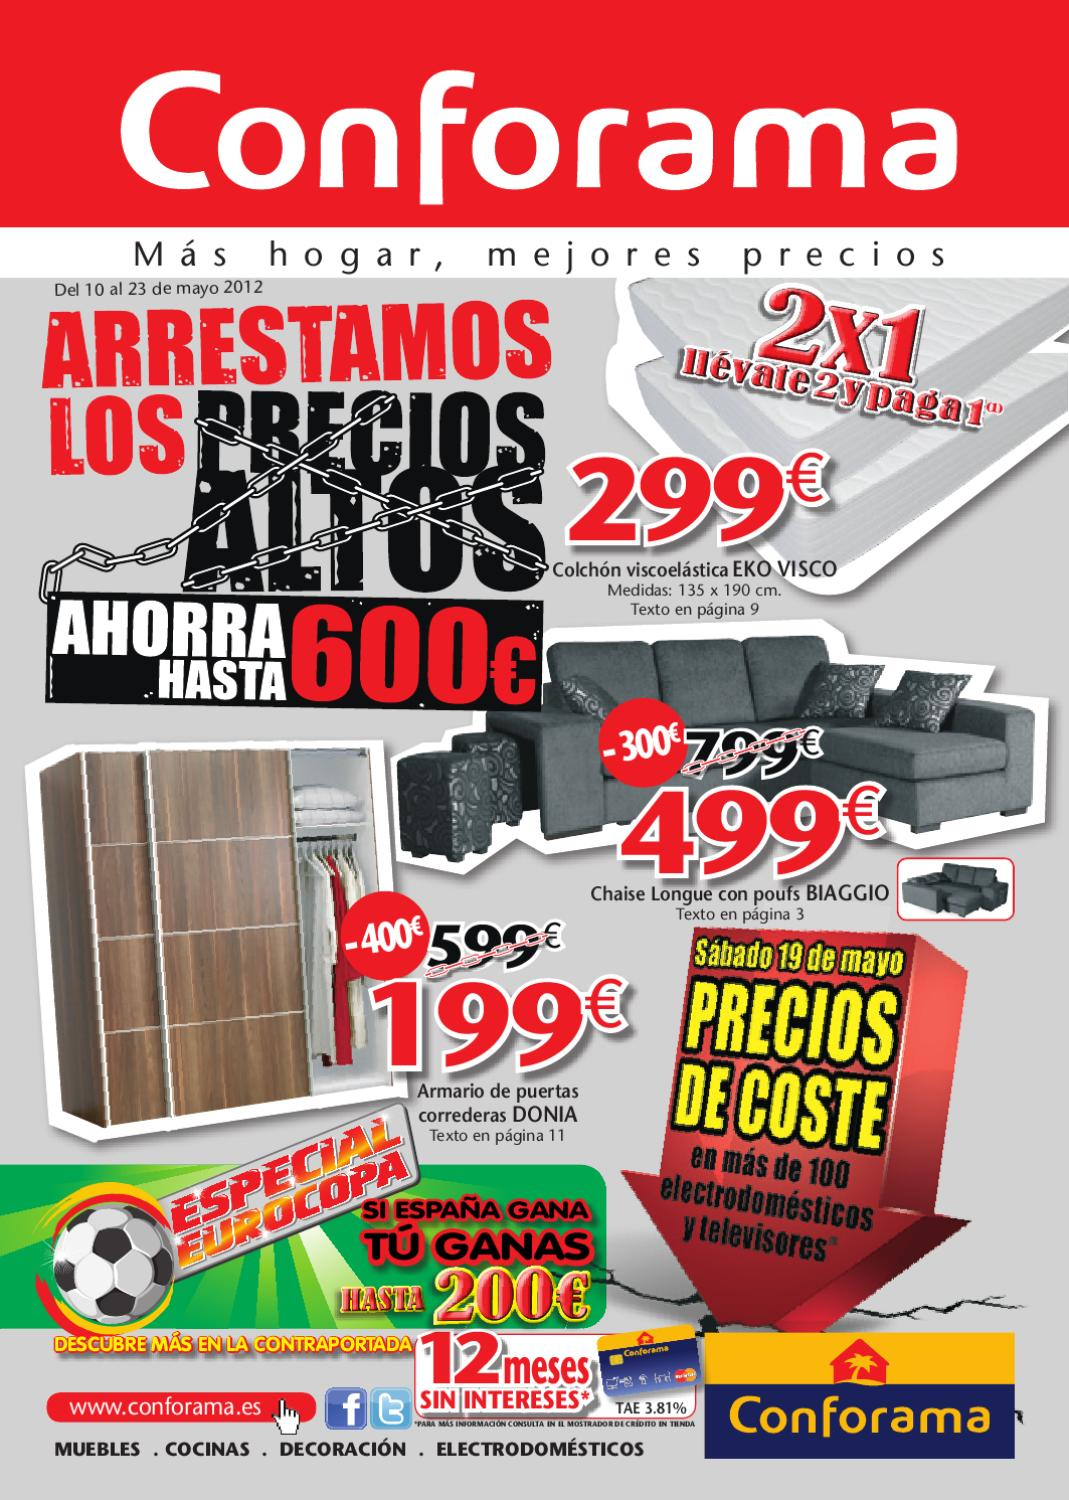 Conforama catalogo folleto hogar 23 mayo 2012 by - Catalogo conforama madrid ...